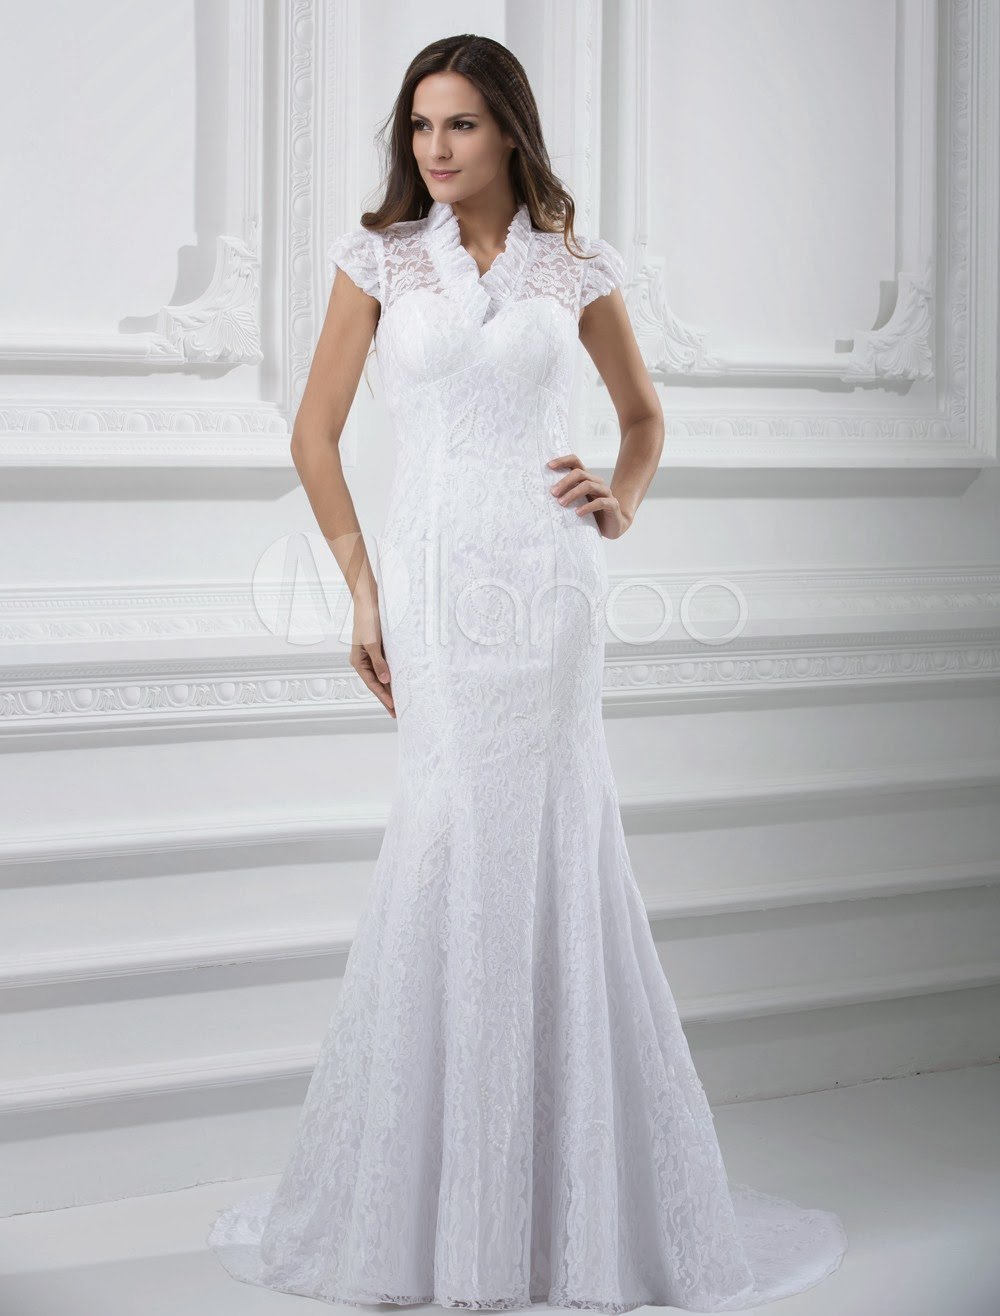 China Wholesale Dresses - Glamorous White Lace Mermaid Wedding Dress For Bride